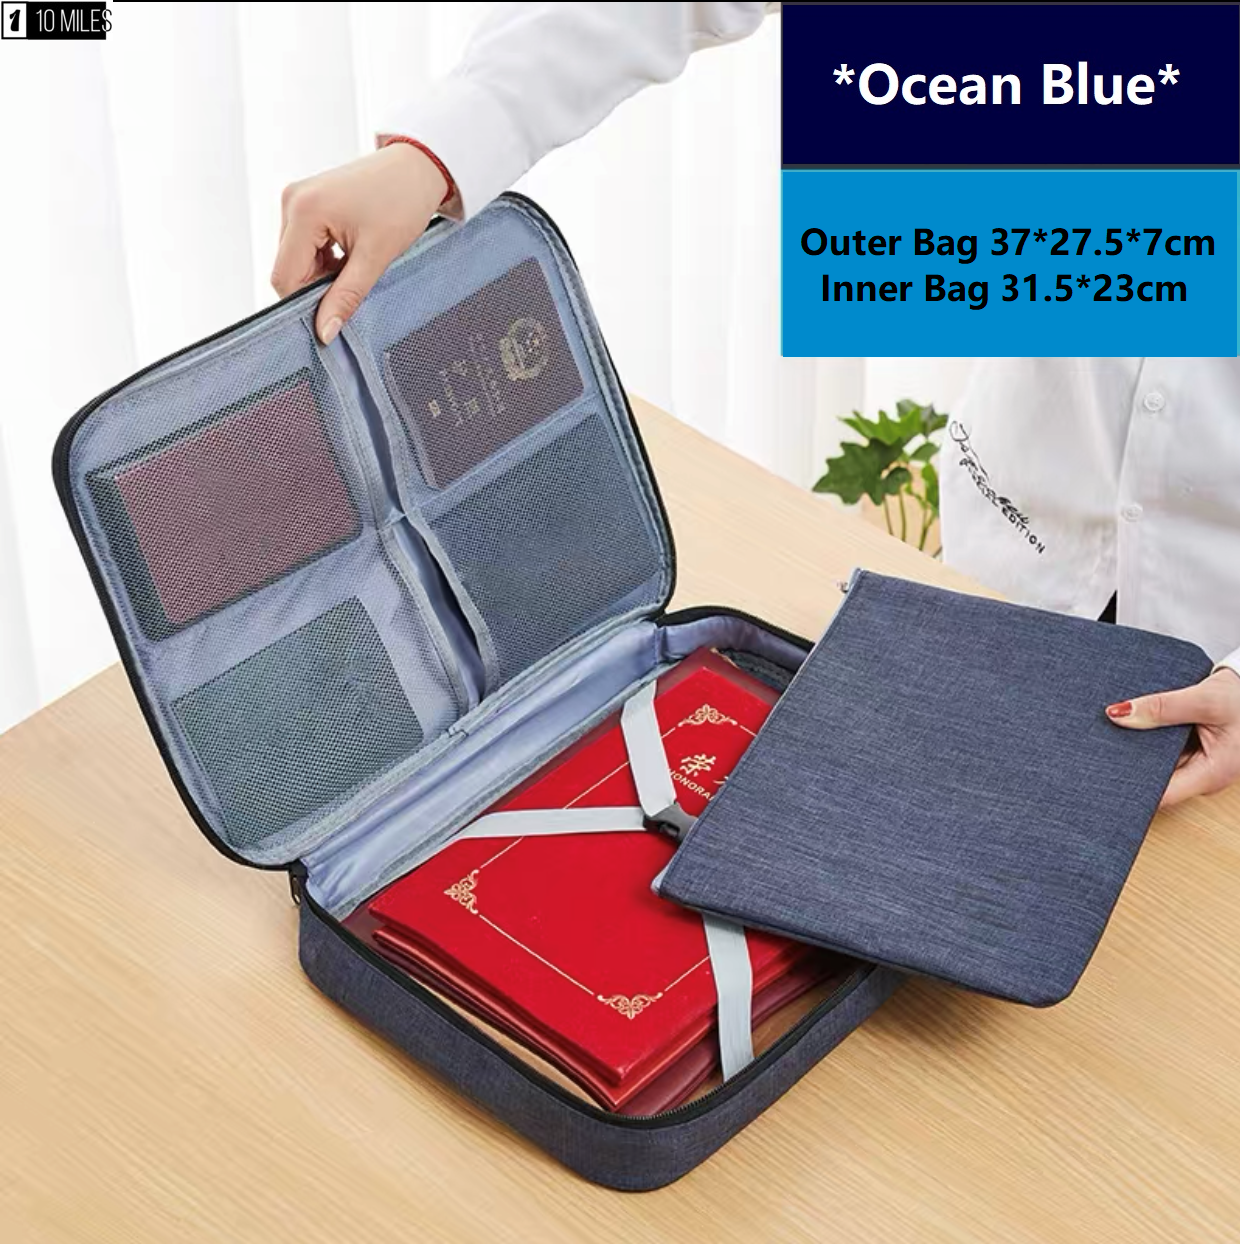 ☑️Optimum Document Storage Bag with Soft Clutch Bag Included for Business Travel Vacation Trip File Organizer